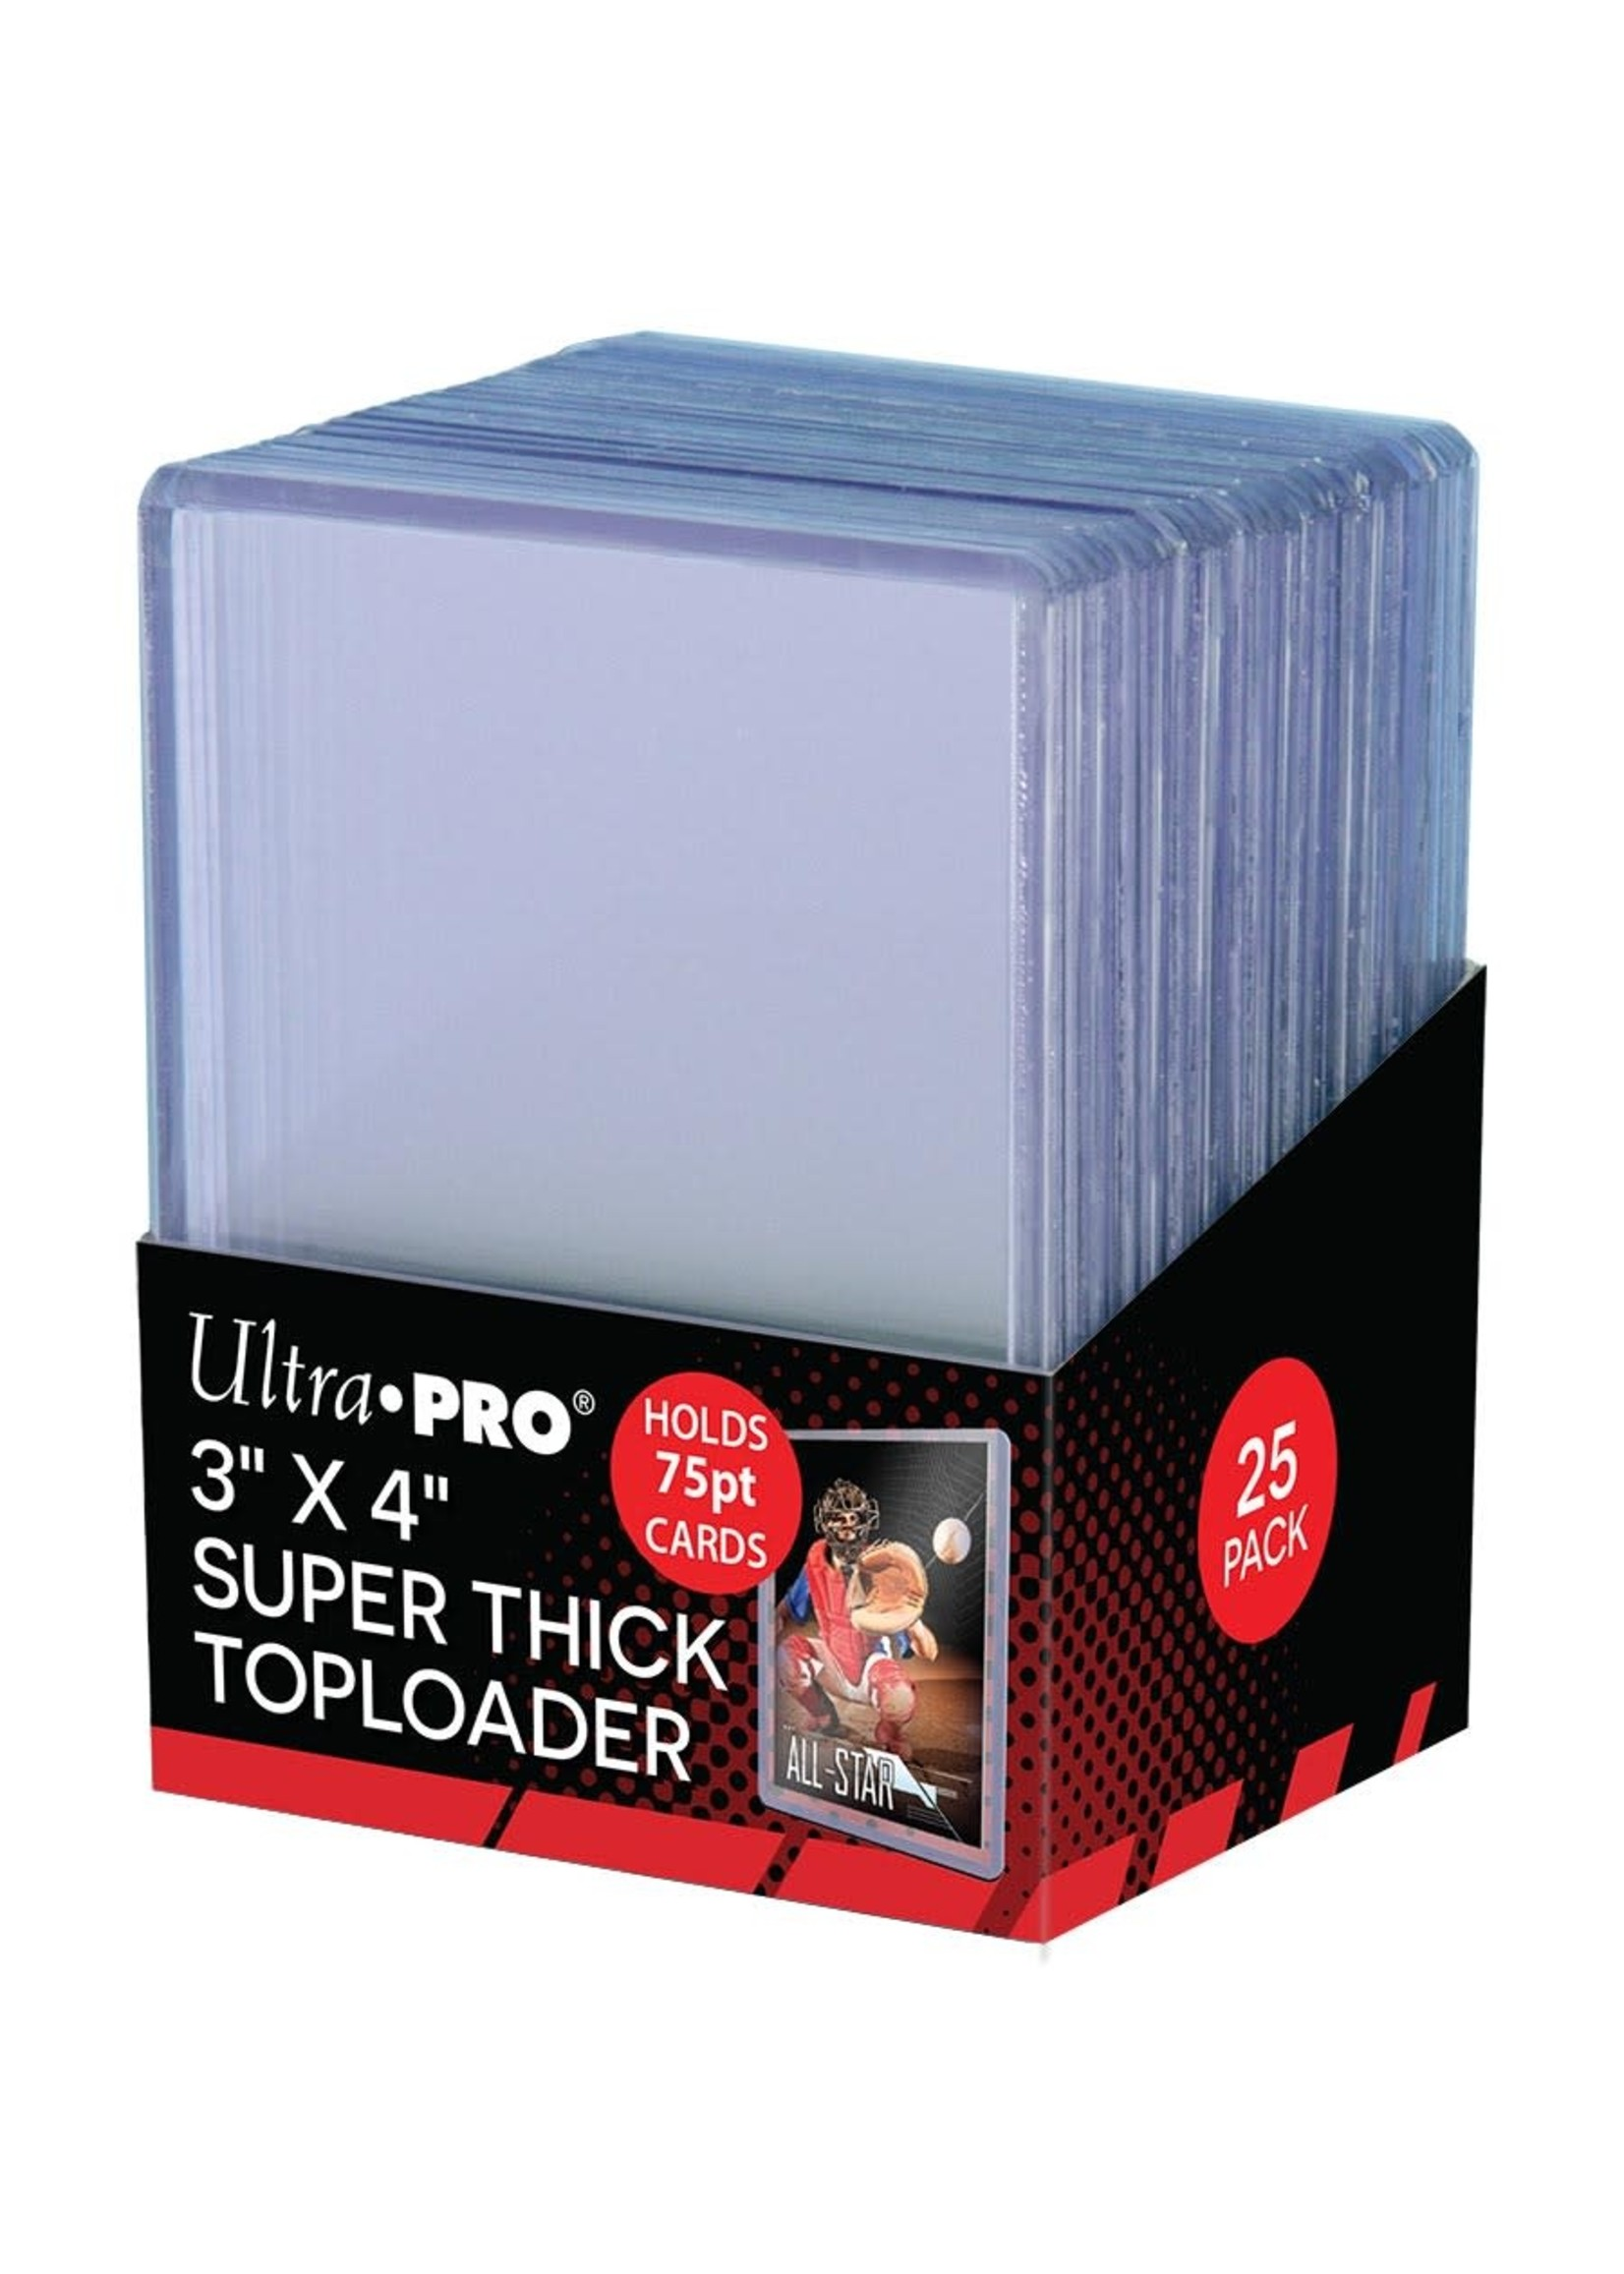 Ultra Pro TOPLOADS 3x4 75PT EXTRA THICK